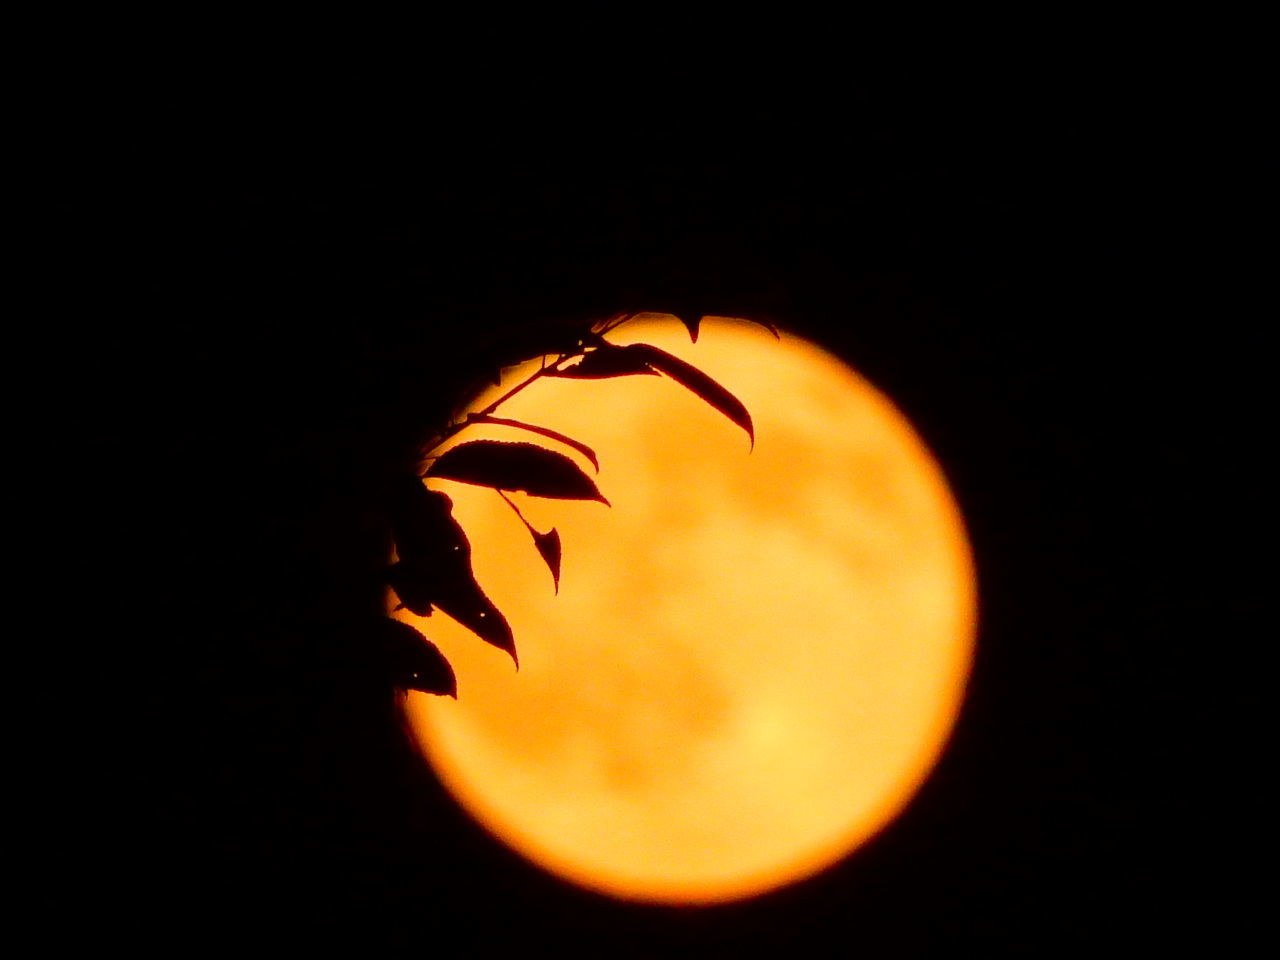 orange color, night, moon, no people, close-up, halloween, pumpkin, illuminated, nature, outdoors, beauty in nature, clear sky, black background, food, astronomy, freshness